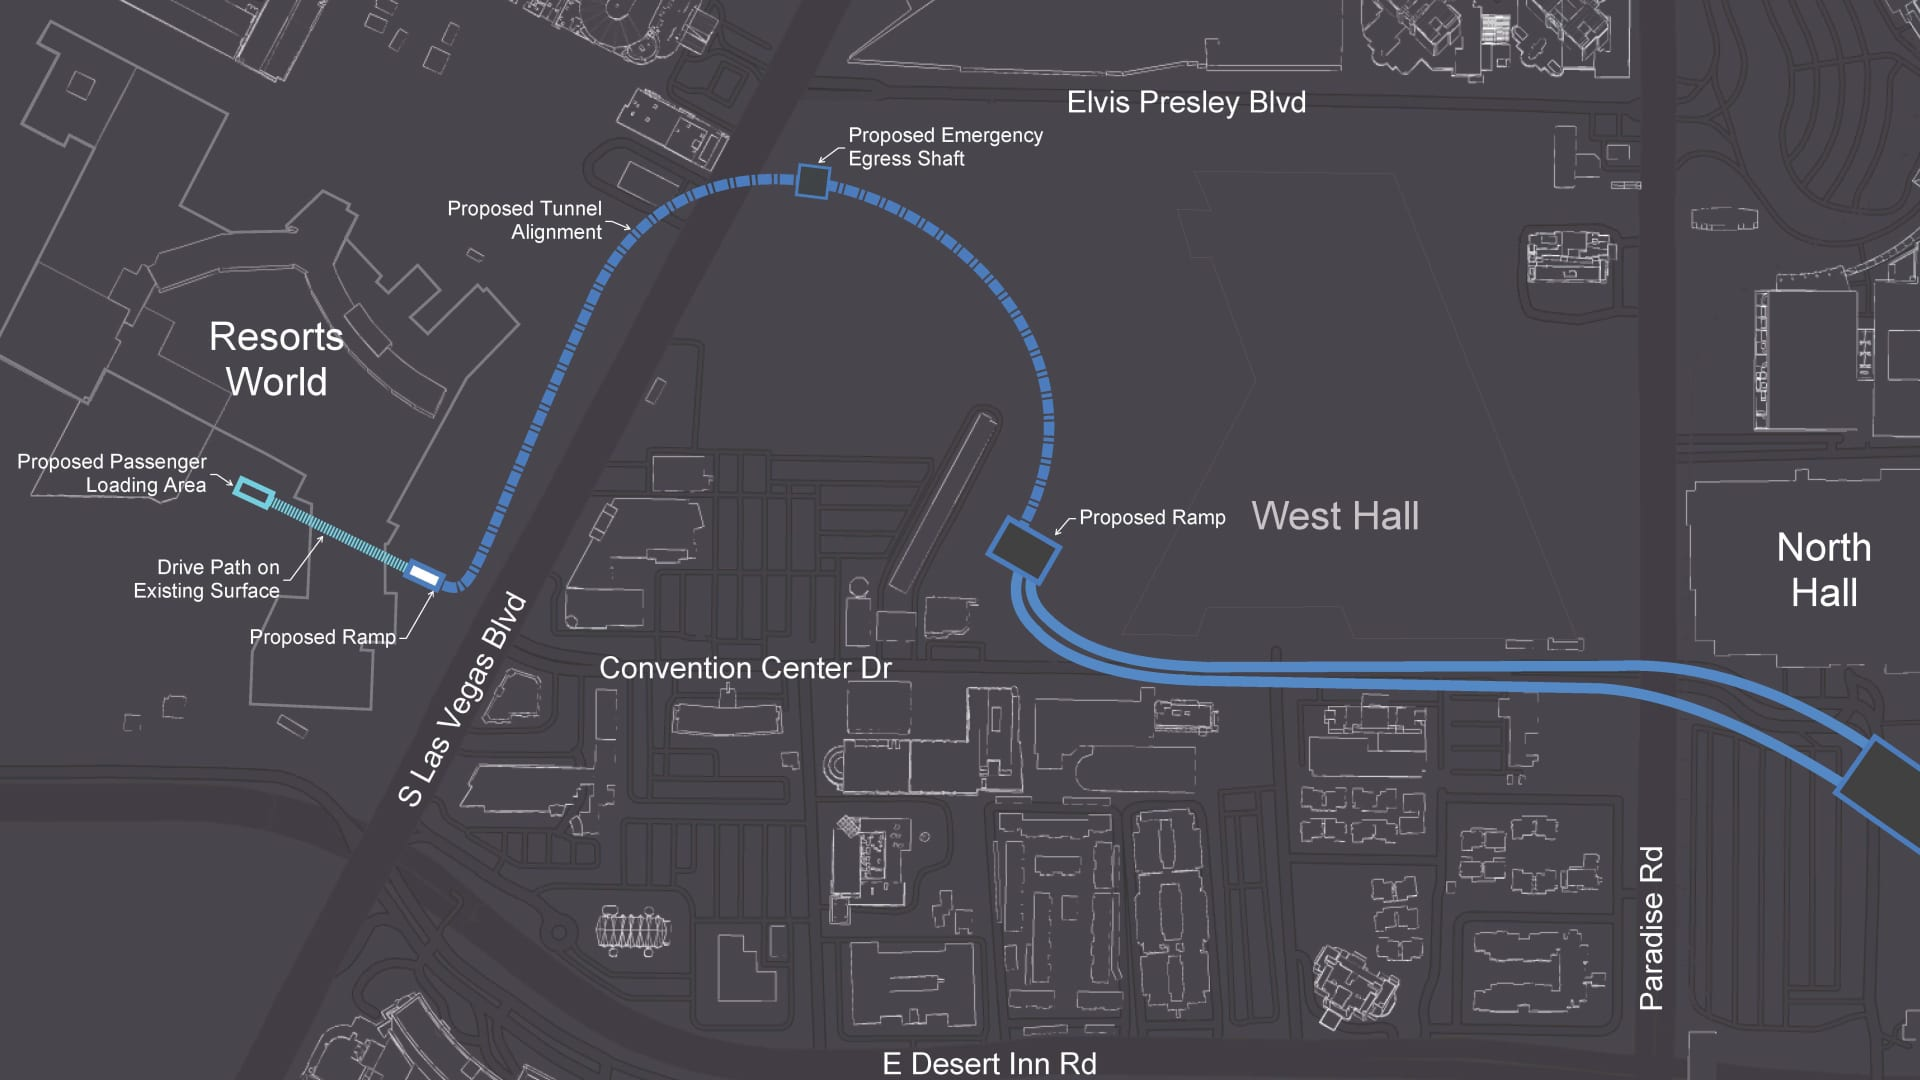 A map showing the proposed route for an underground tunnel from The Boring Company and Resorts World Las Vegas.